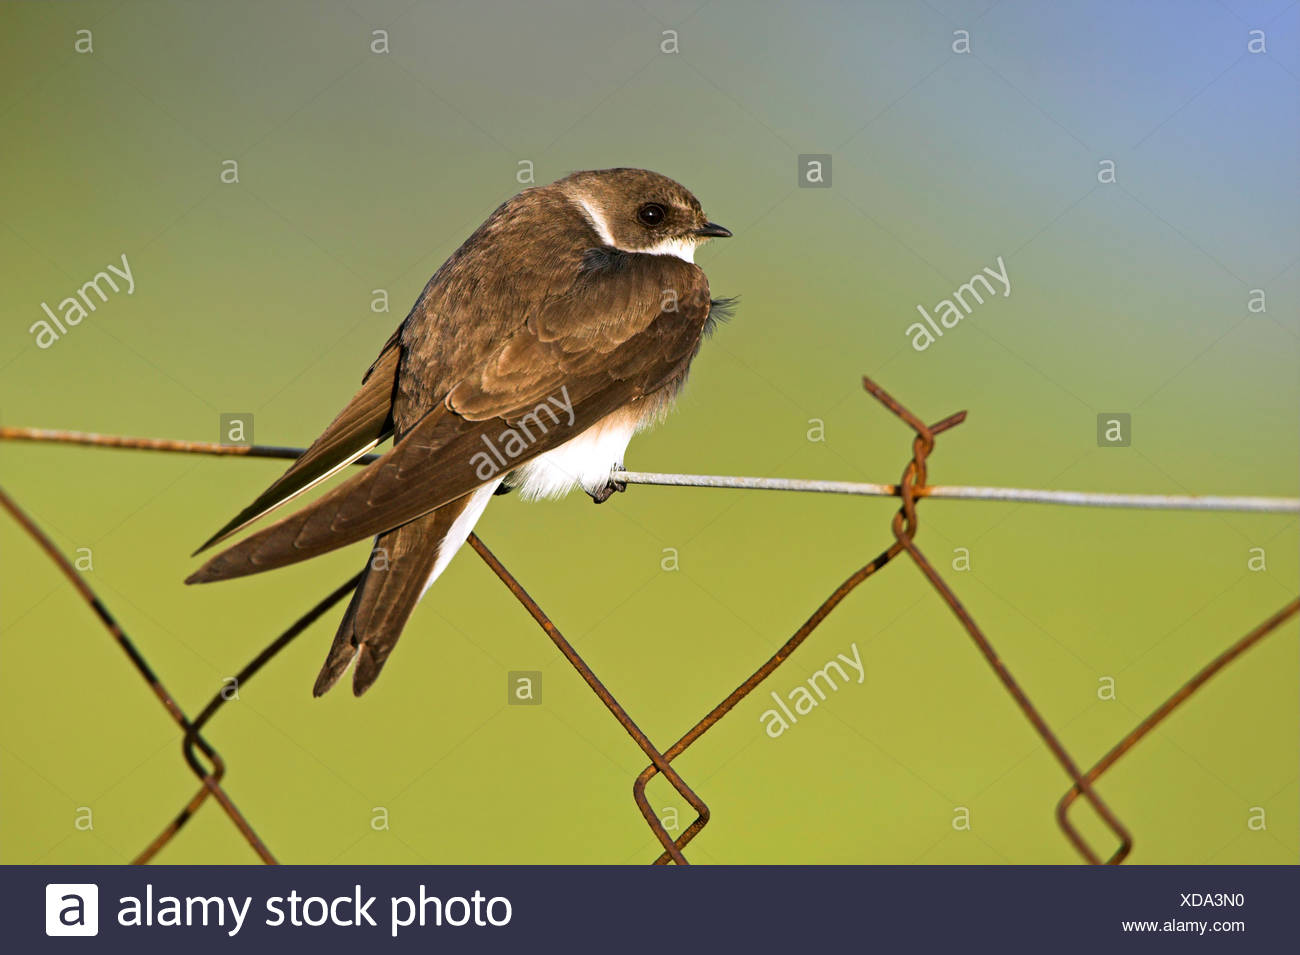 sand martin (Riparia riparia), sitting on a mesh wire fence, Greece, Lesbos - Stock Image